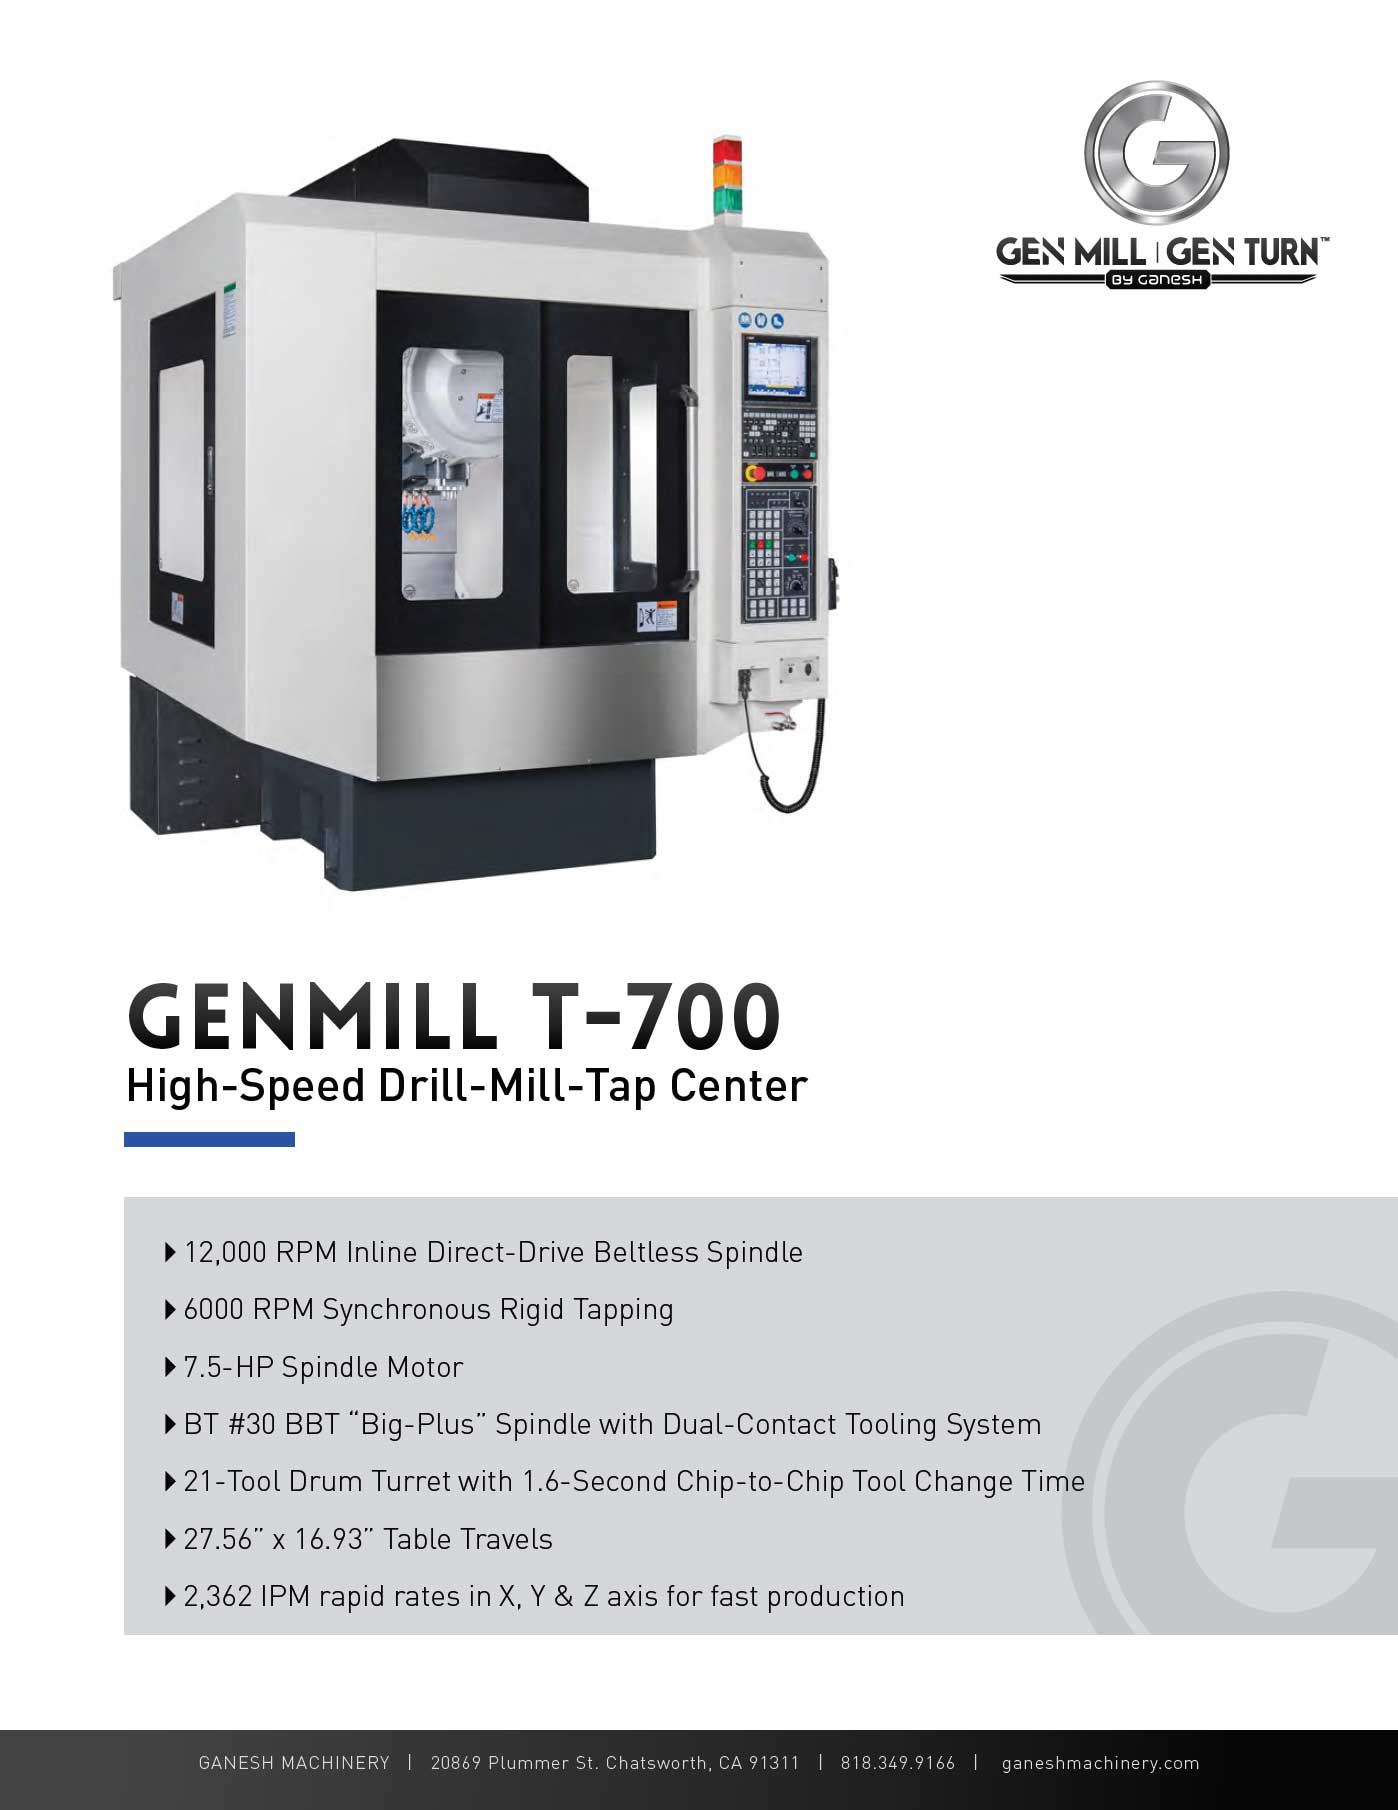 GENMILL T-700 Quote